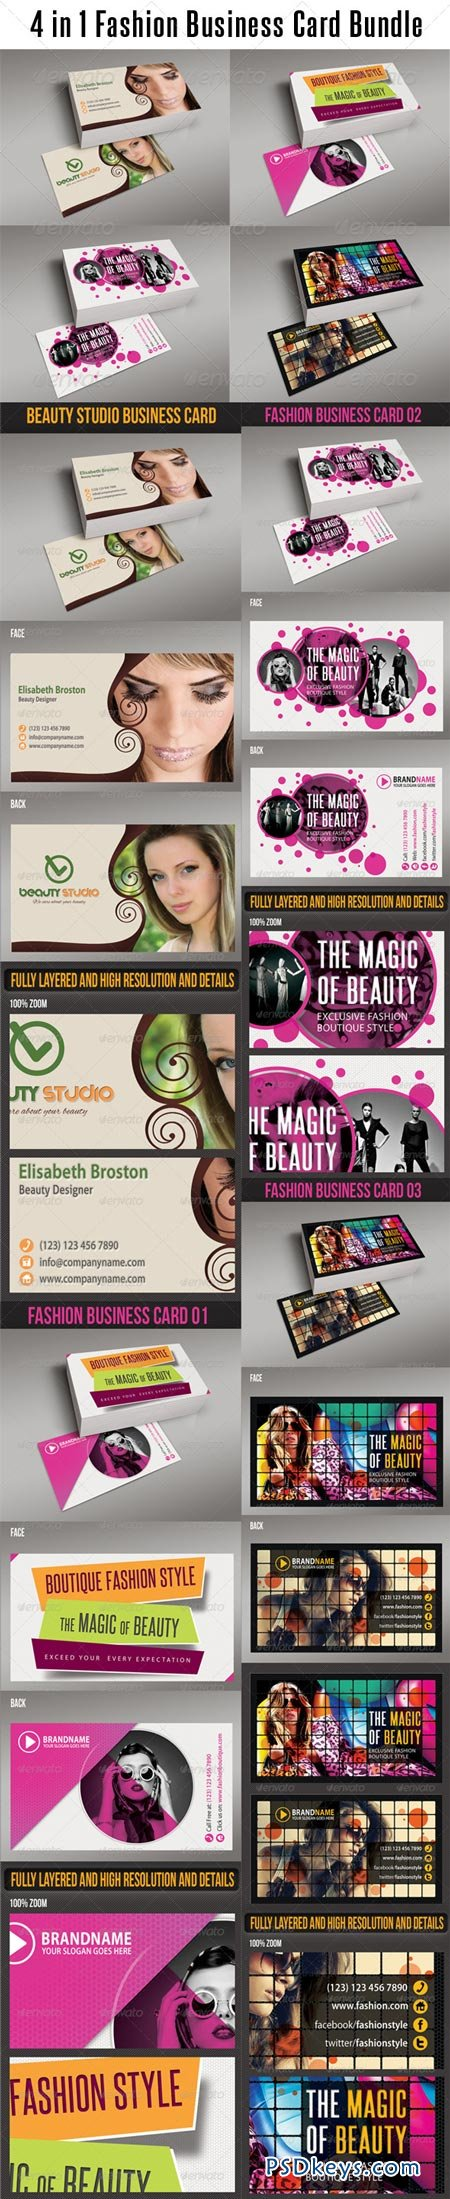 4 in 1 Fashion Business Card Bundle 6257751